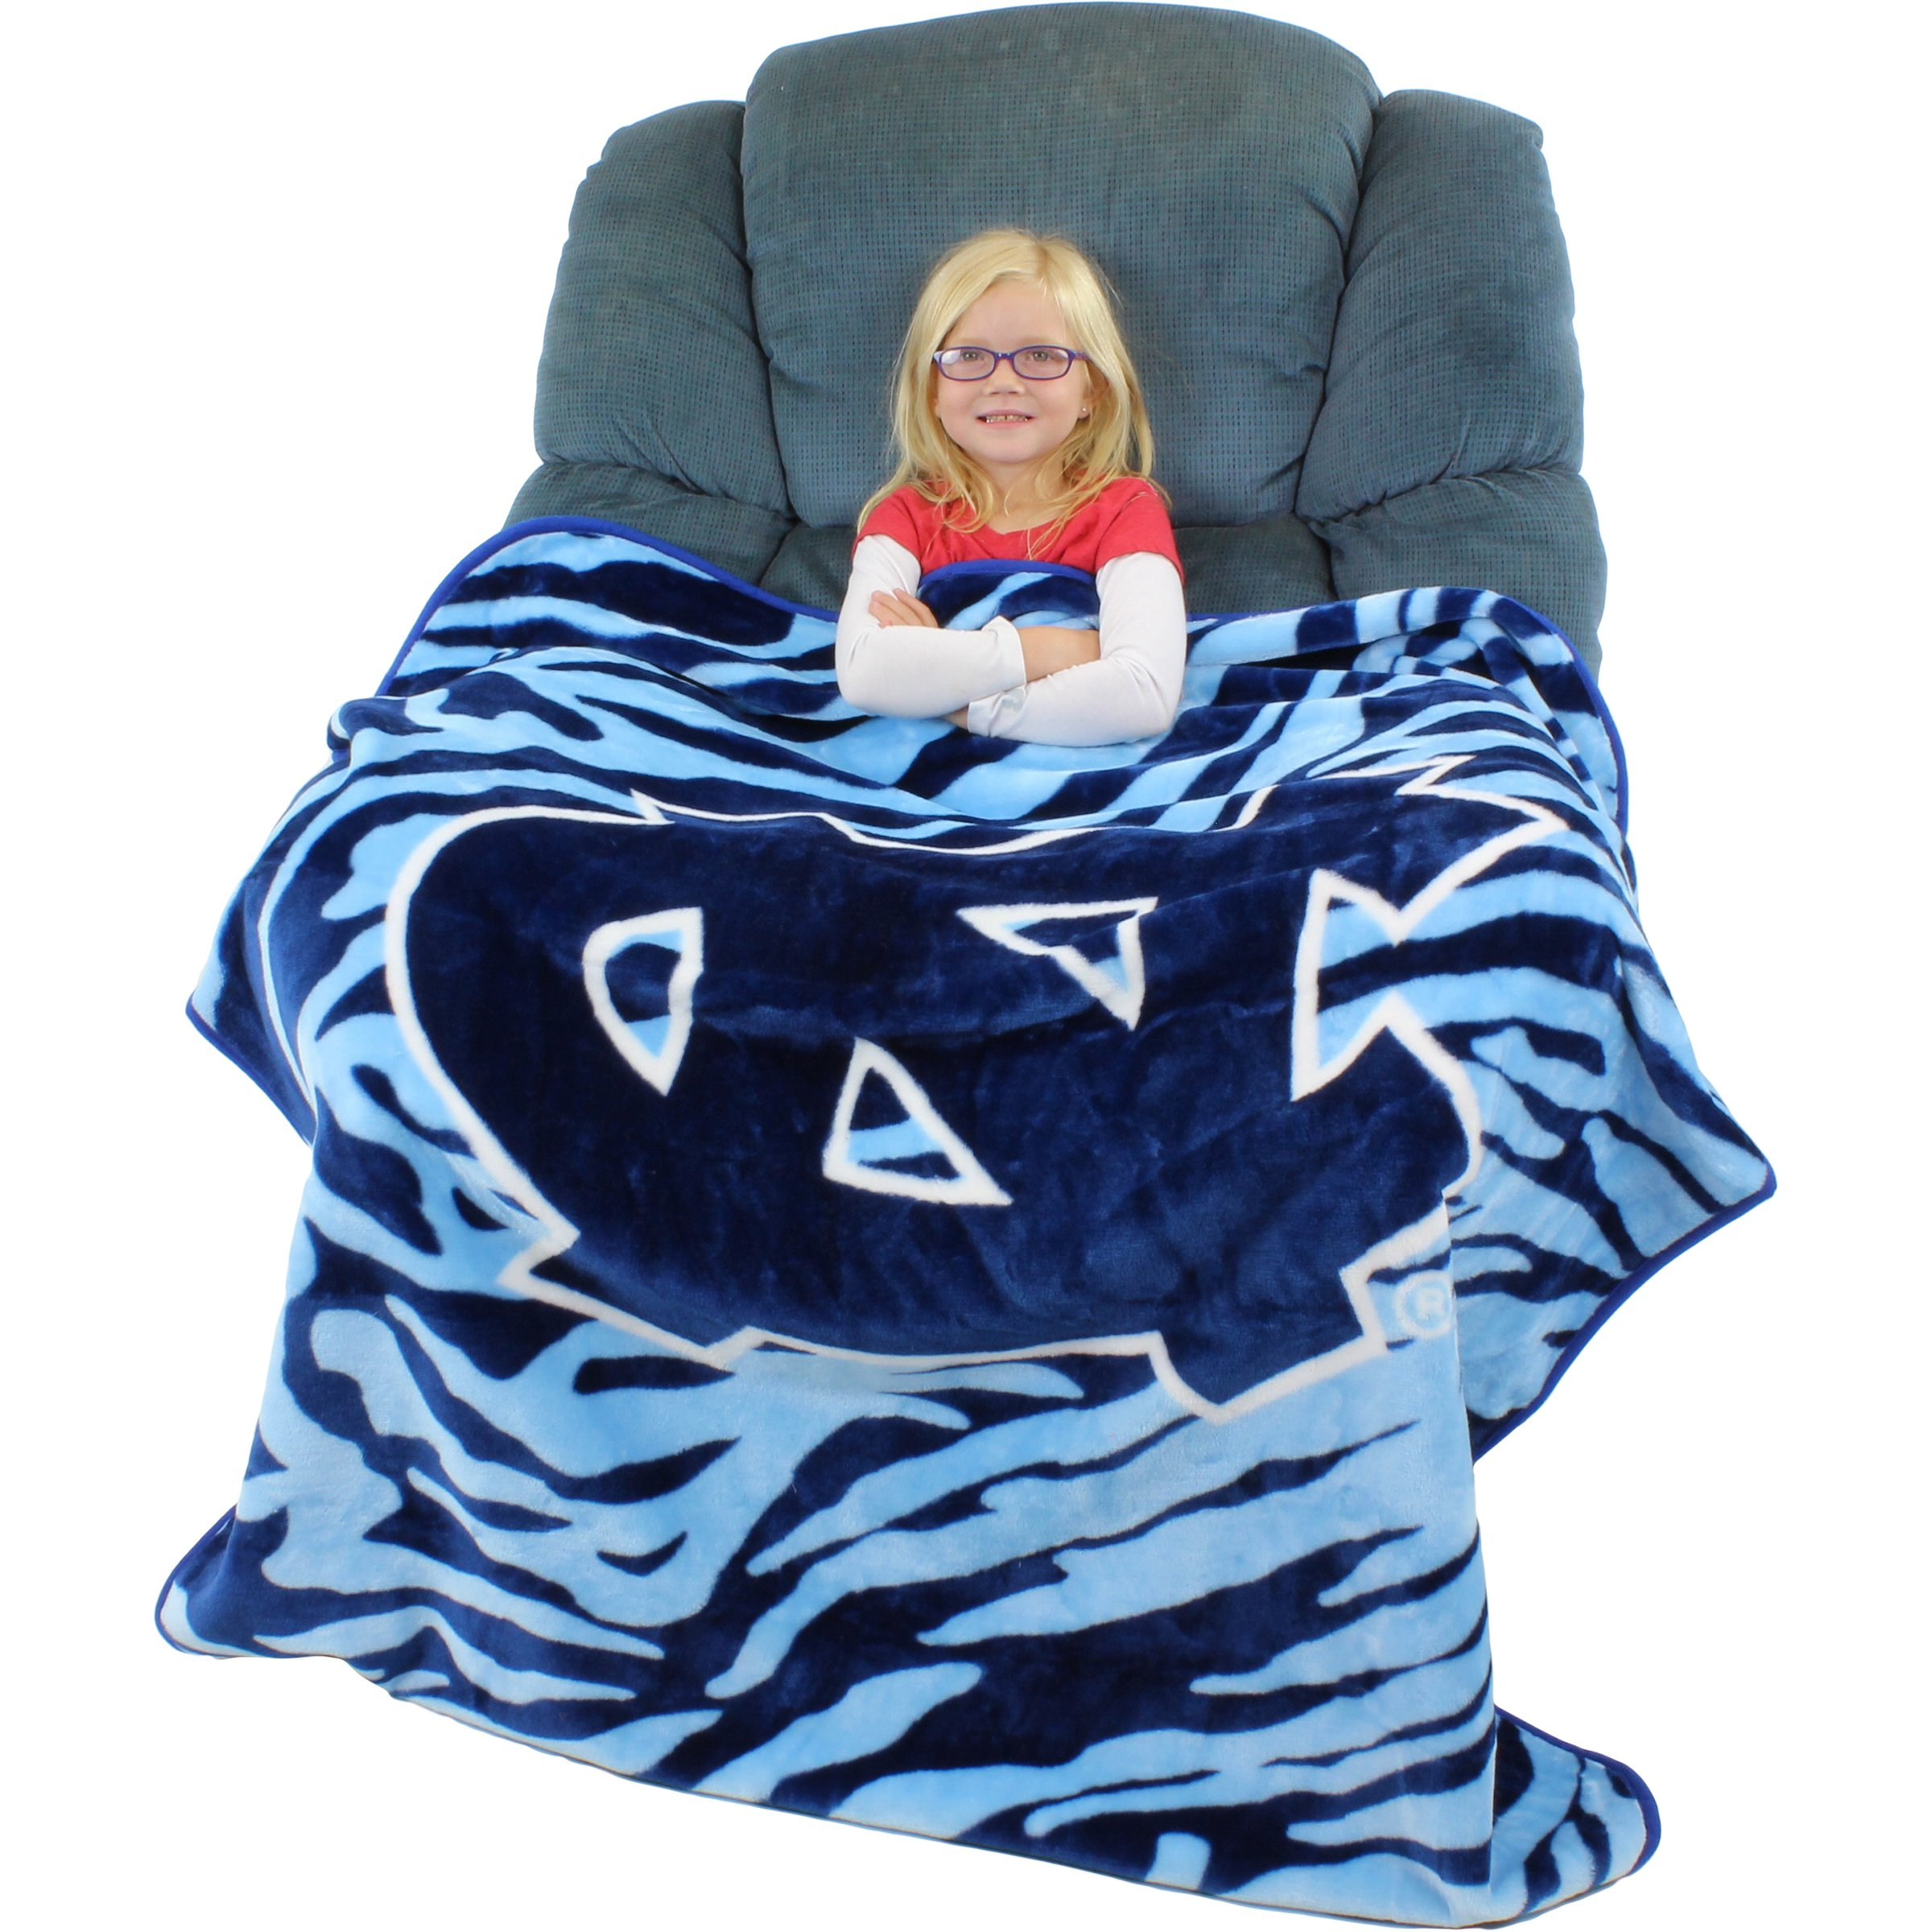 College Covers Raschel Throw Blanket, 50'' x 60'', North Carolina Tar Heels by College Covers